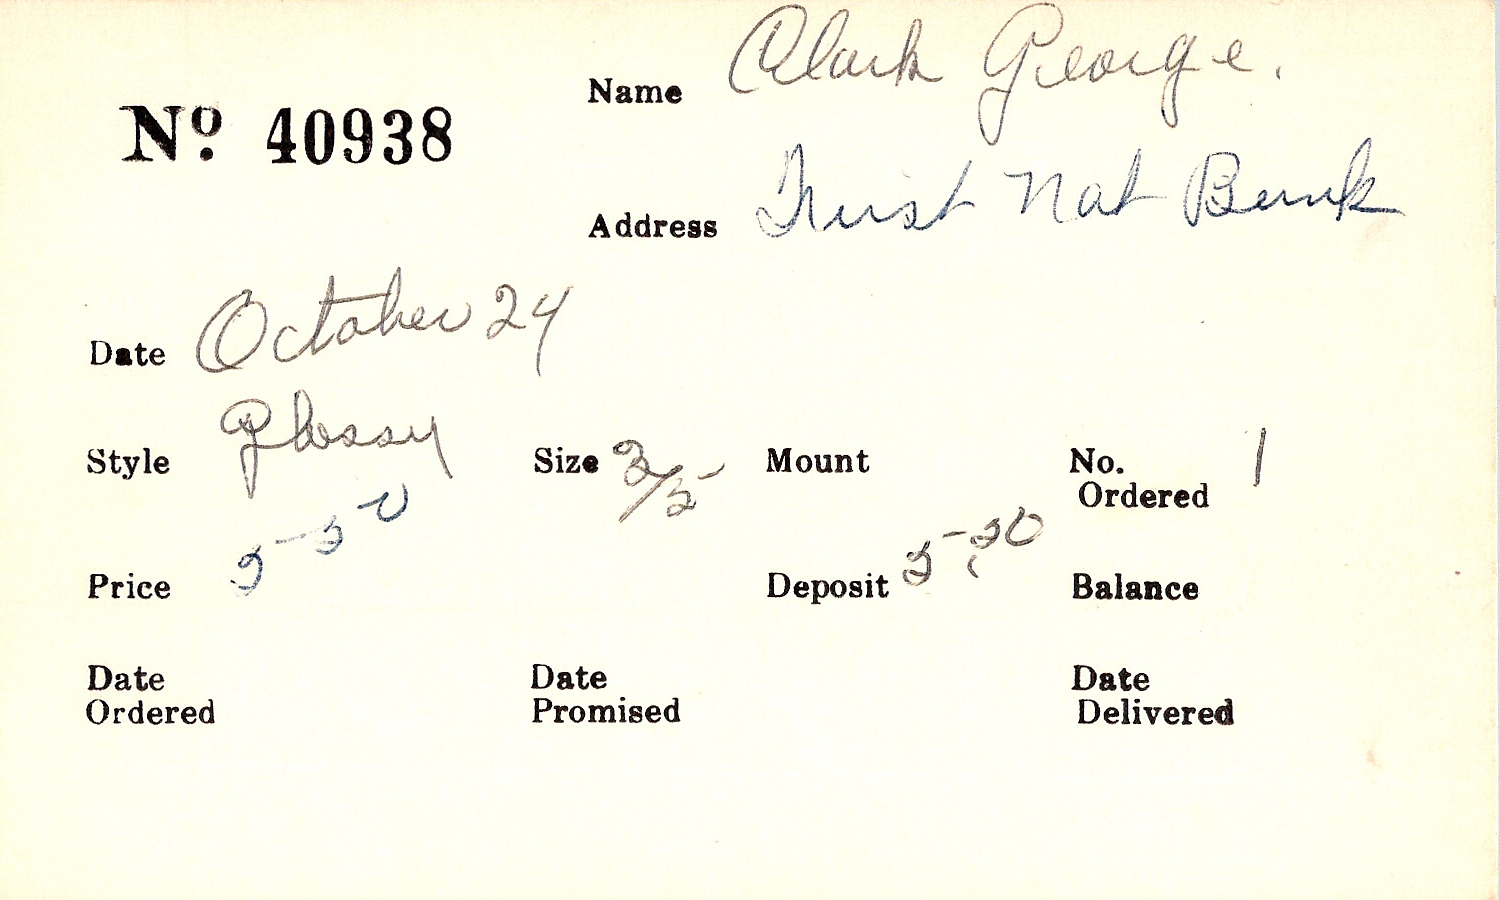 Index card for George Clark